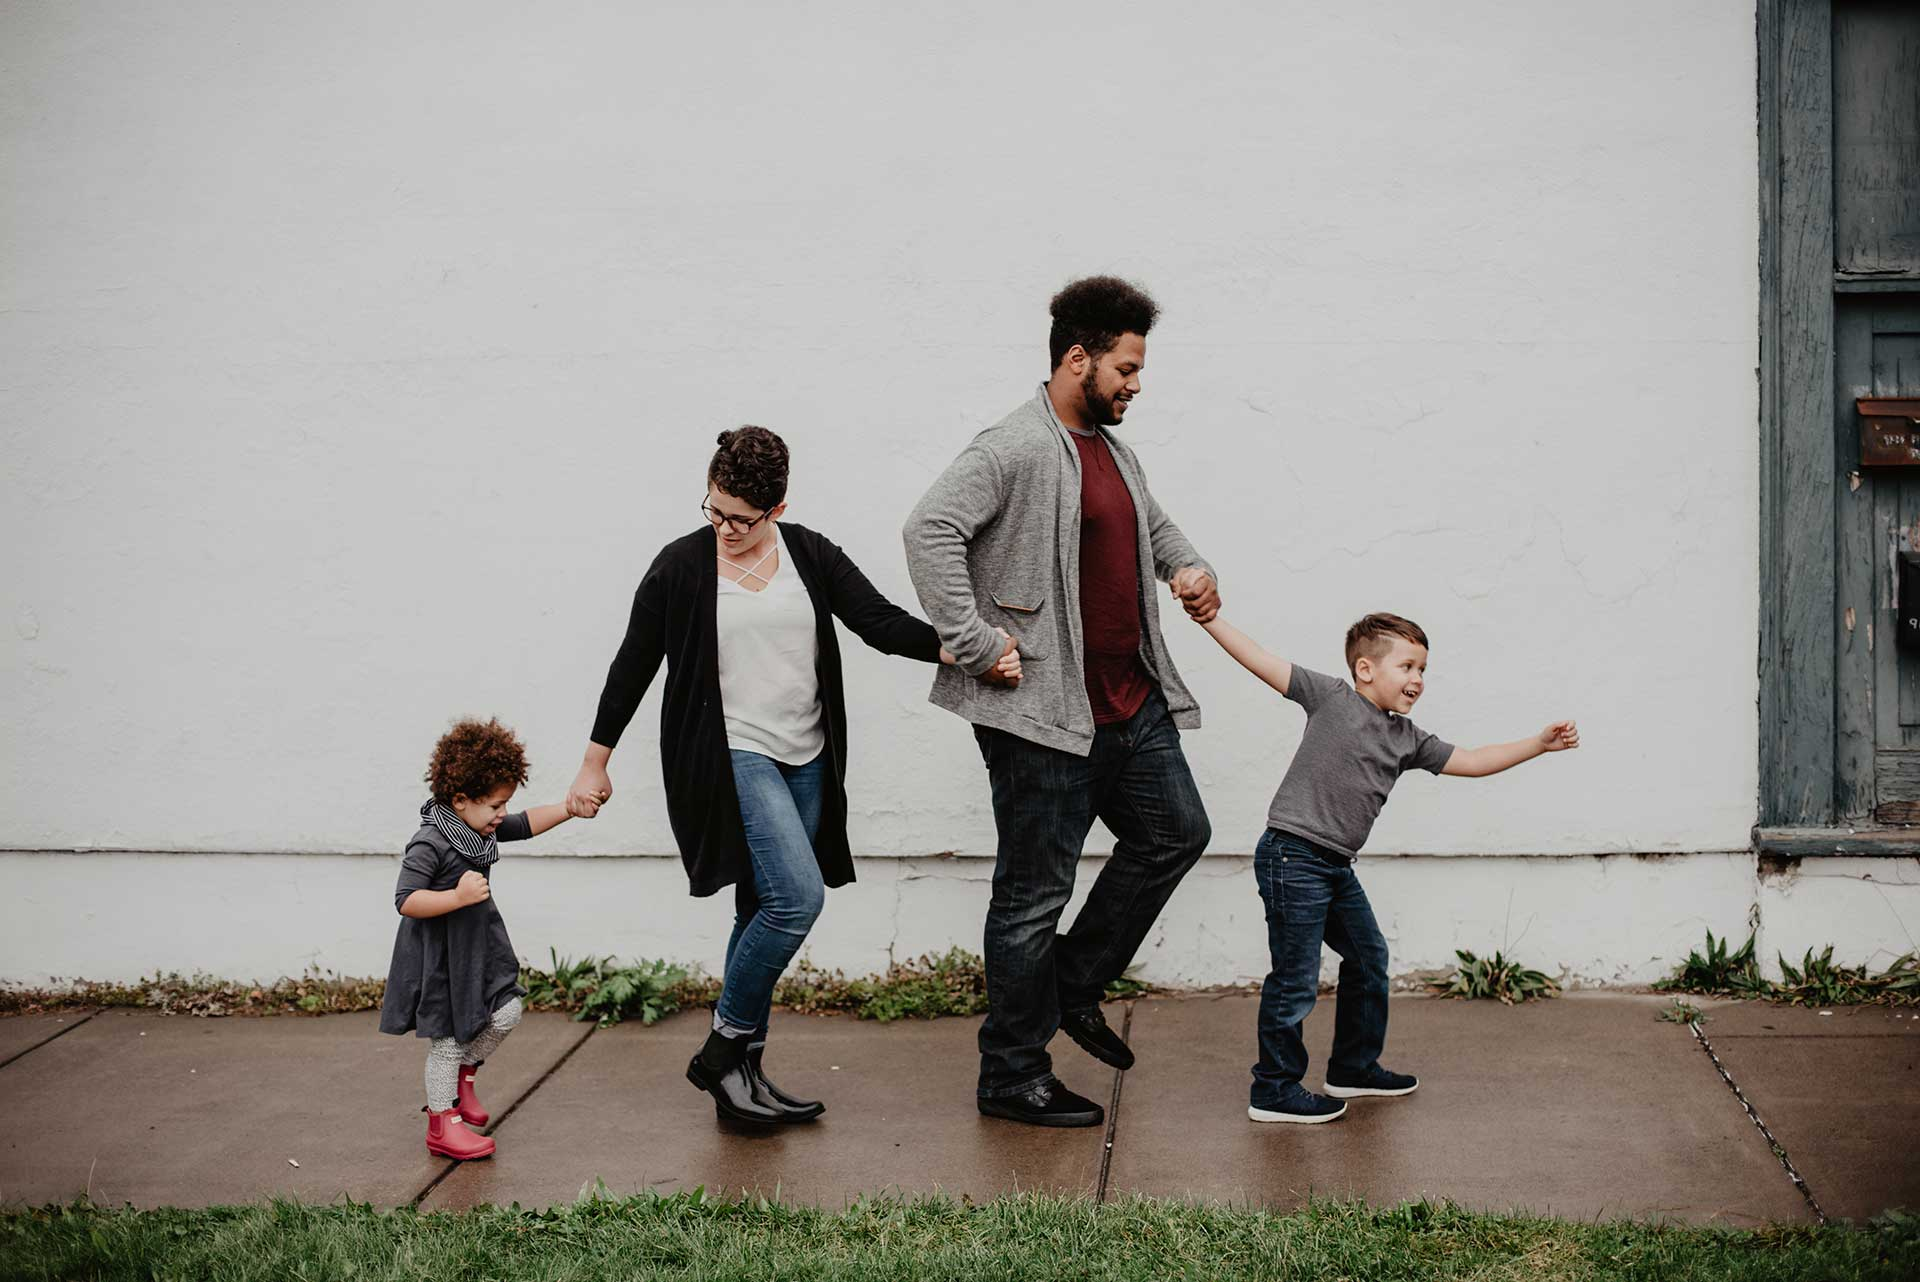 father mother and two children holding hands walking on a sidewalk